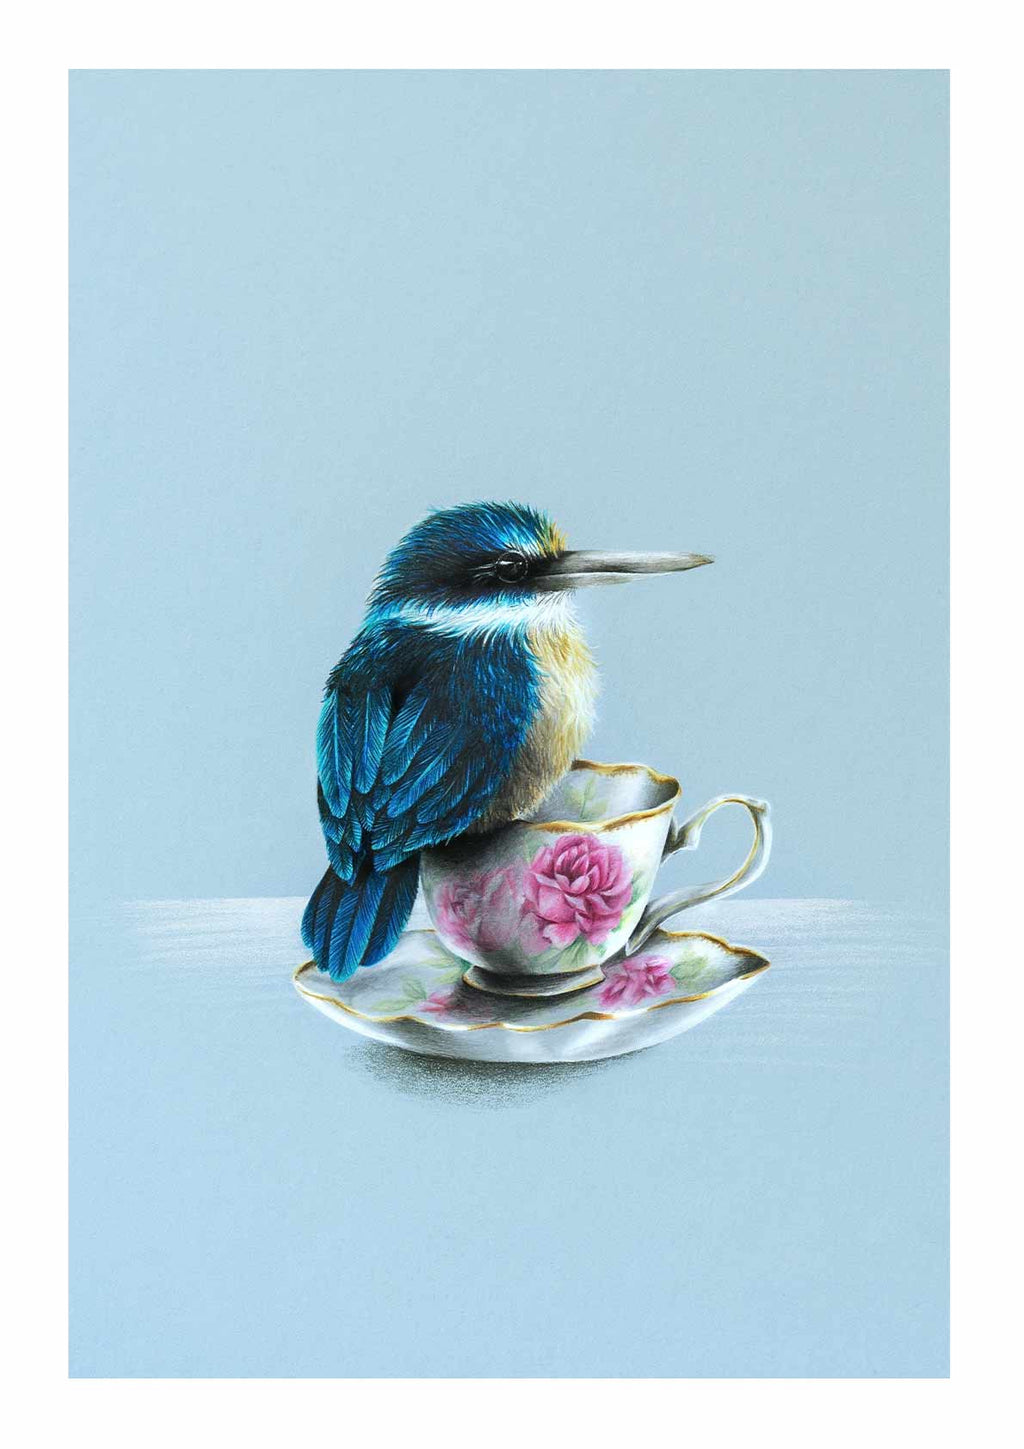 Kingfisher on a Teacup